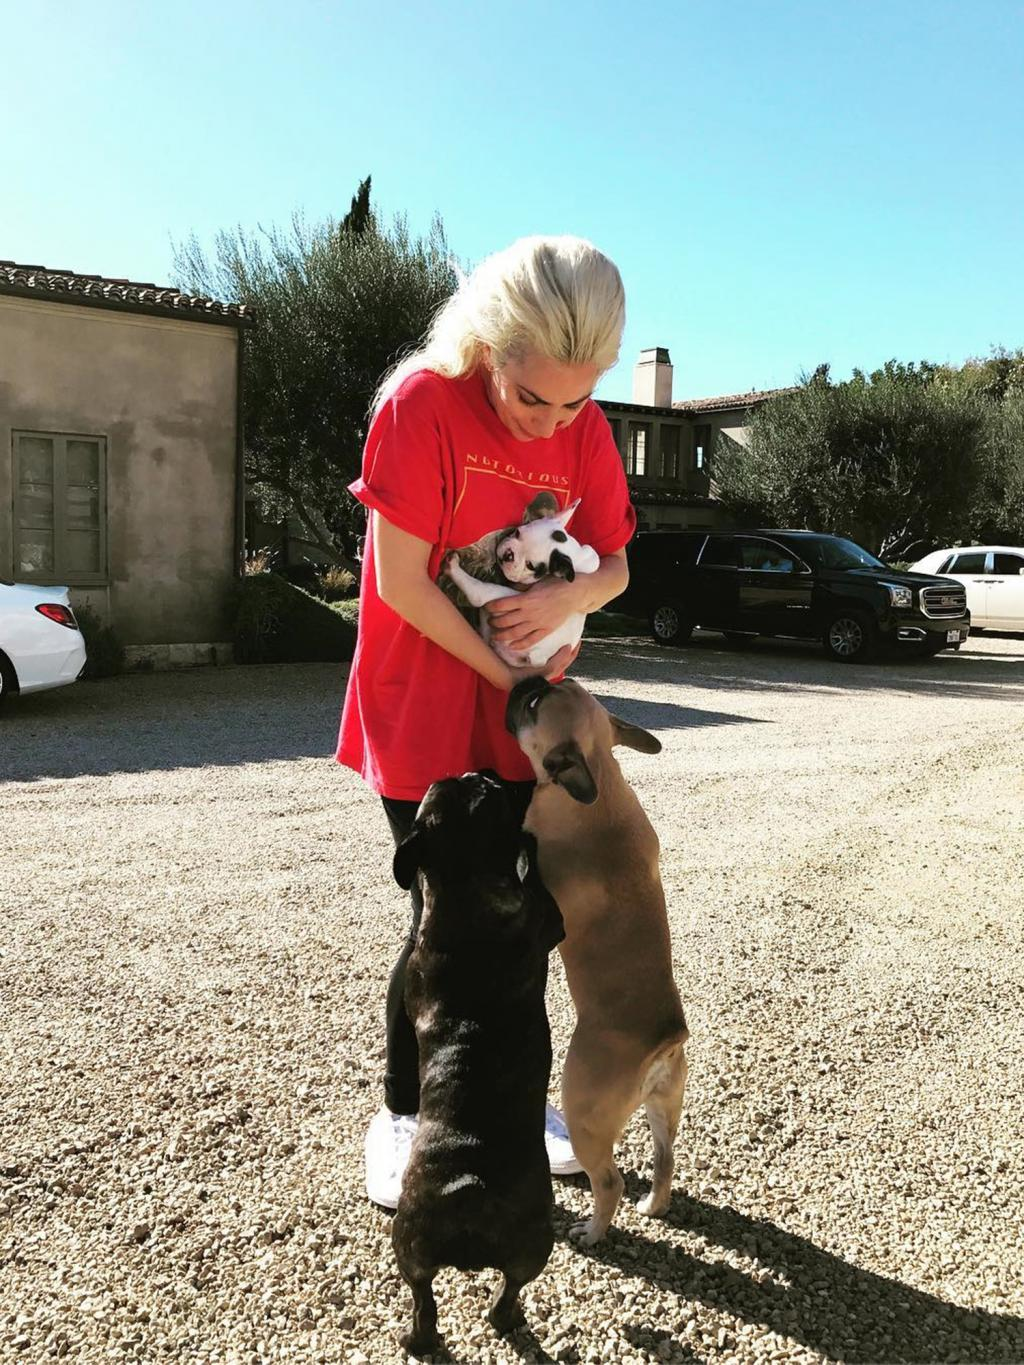 Lady Gaga Welcomes a New Family Member  '  See Her Adorable Puppy!